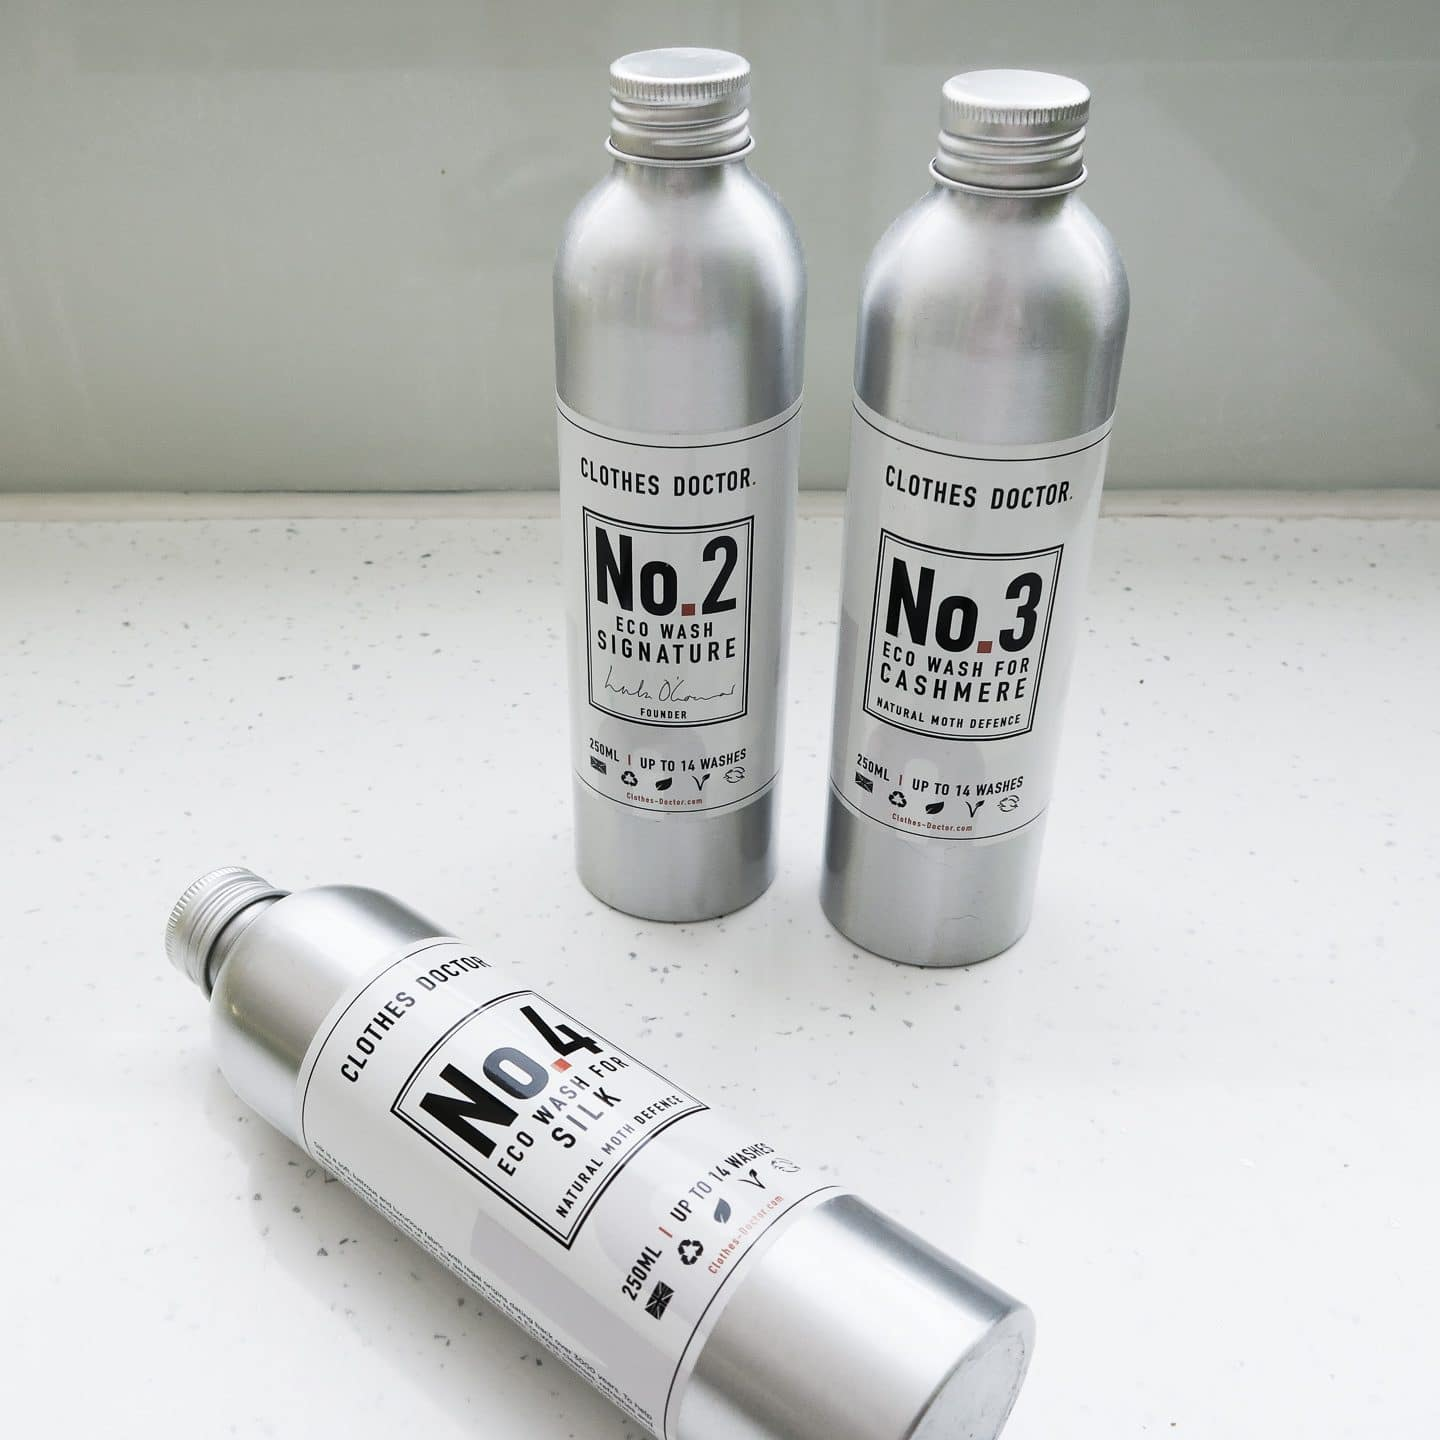 Three bottles from Clothes Doctor Range